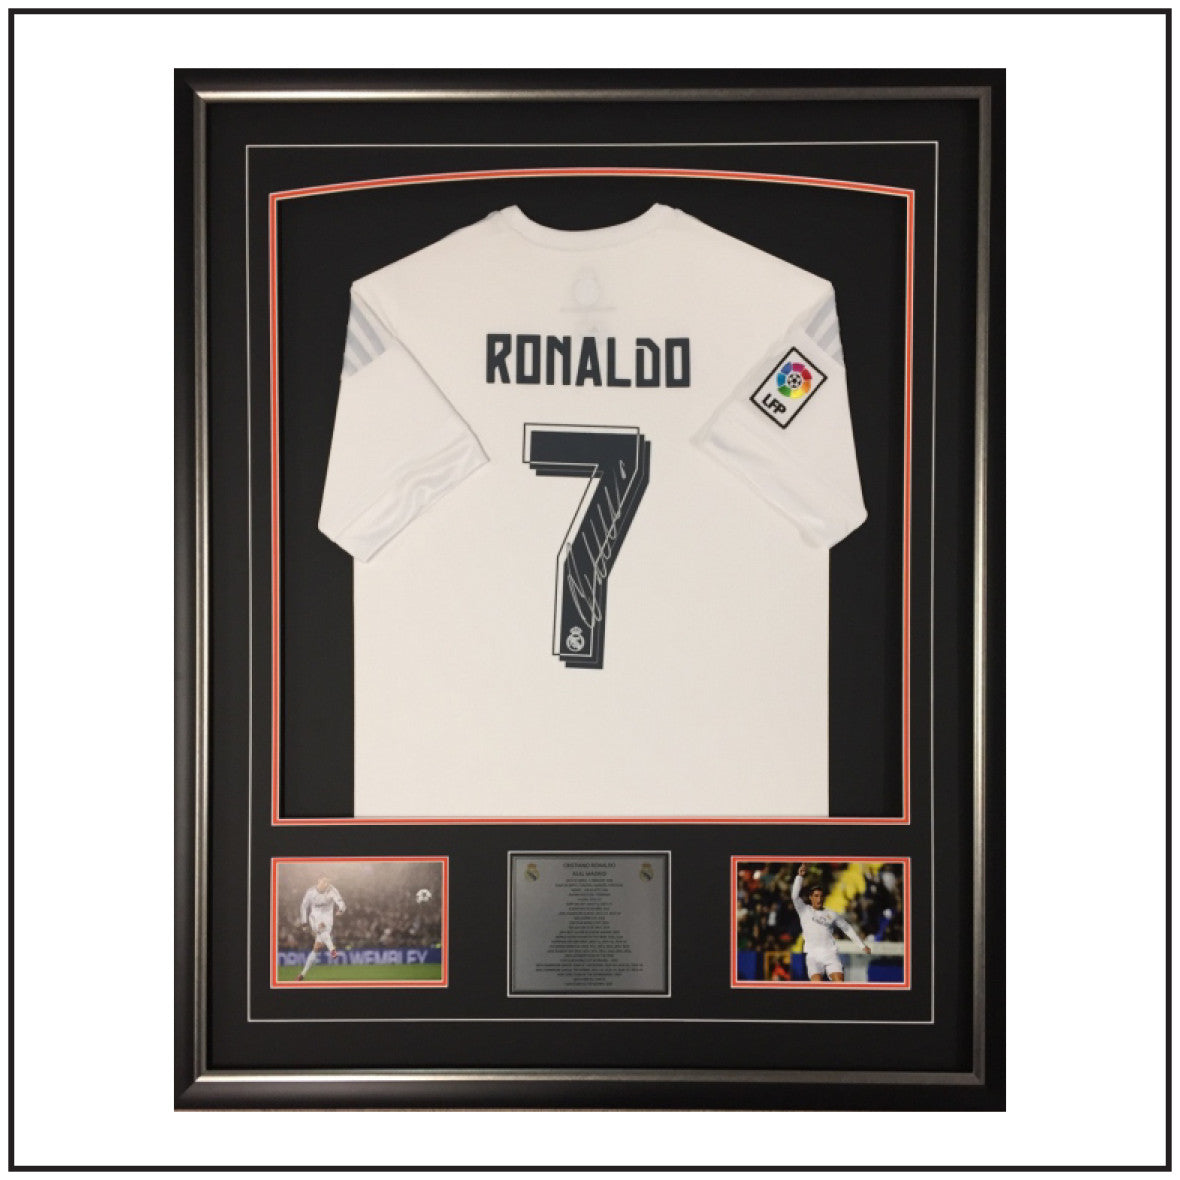 best service 4447d 33dfc cristiano ronaldo signed jersey for sale on sale > OFF38 ...